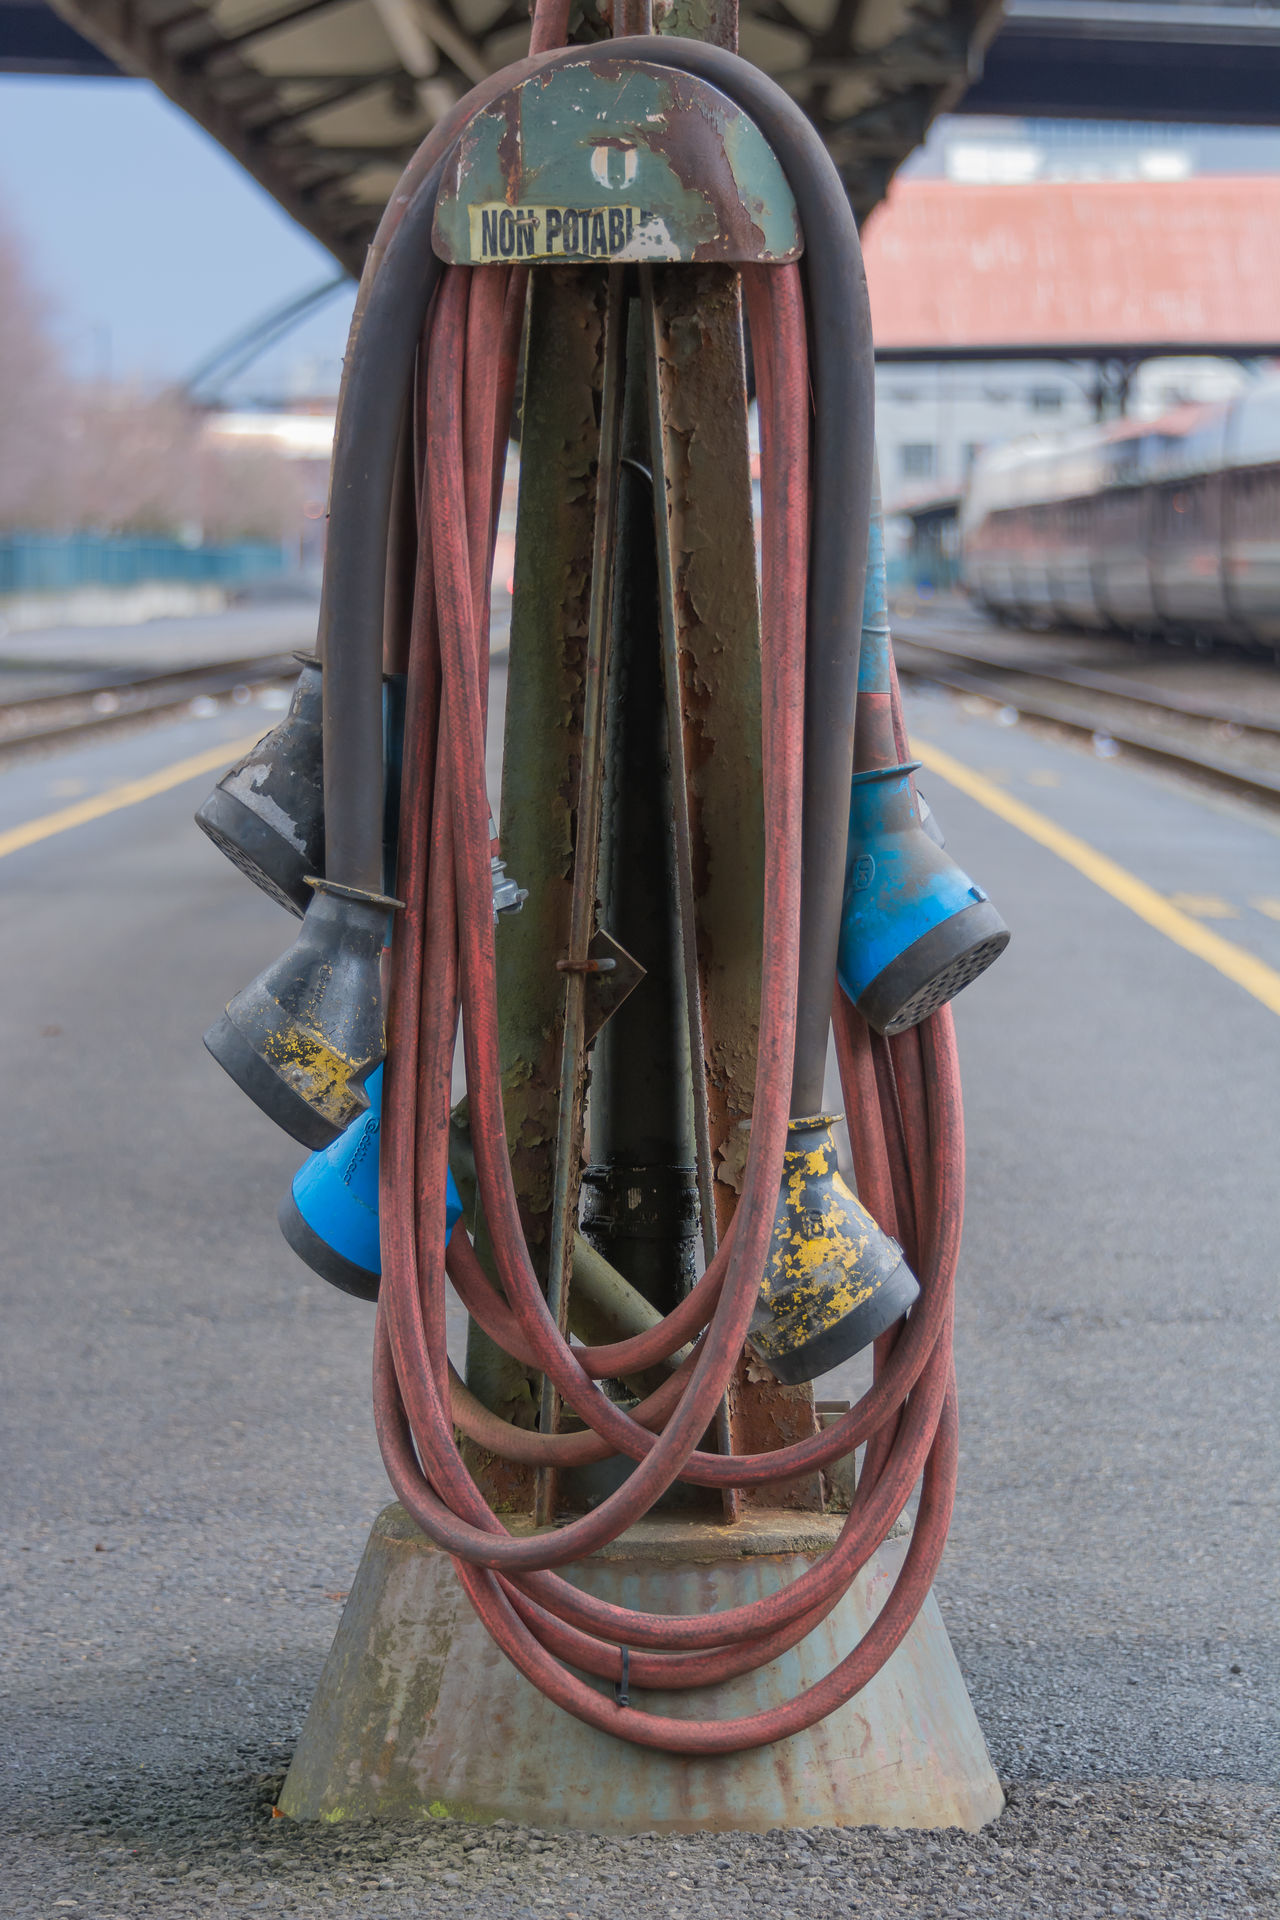 Day Industrial Photography Industry No People Outdoors Train Station Water Hose